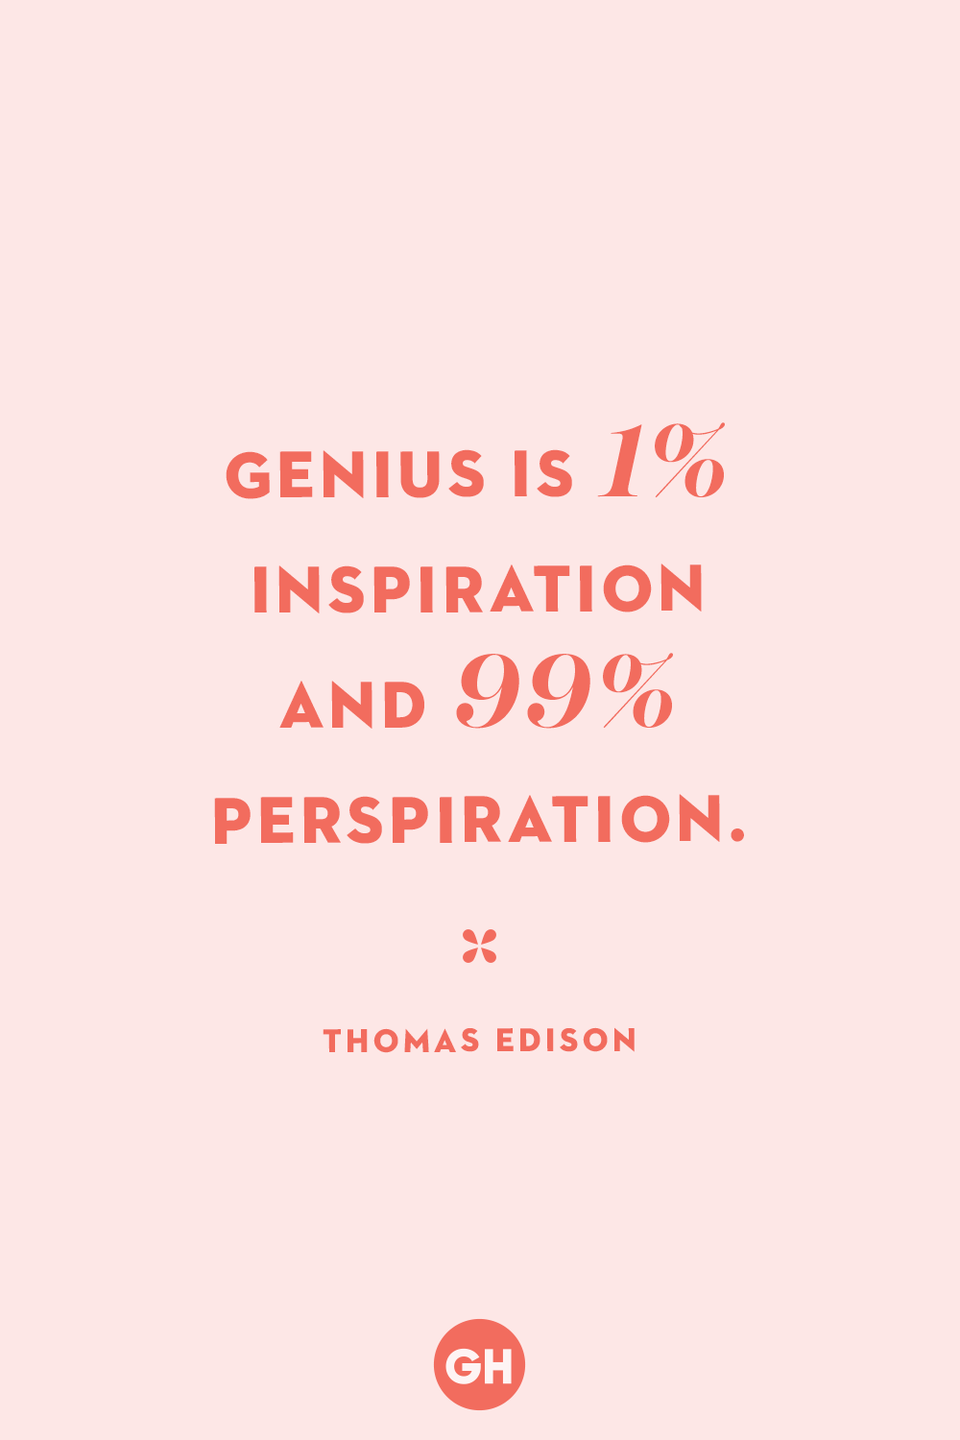 <p>Genius is 1% inspiration and 99% perspiration.</p>